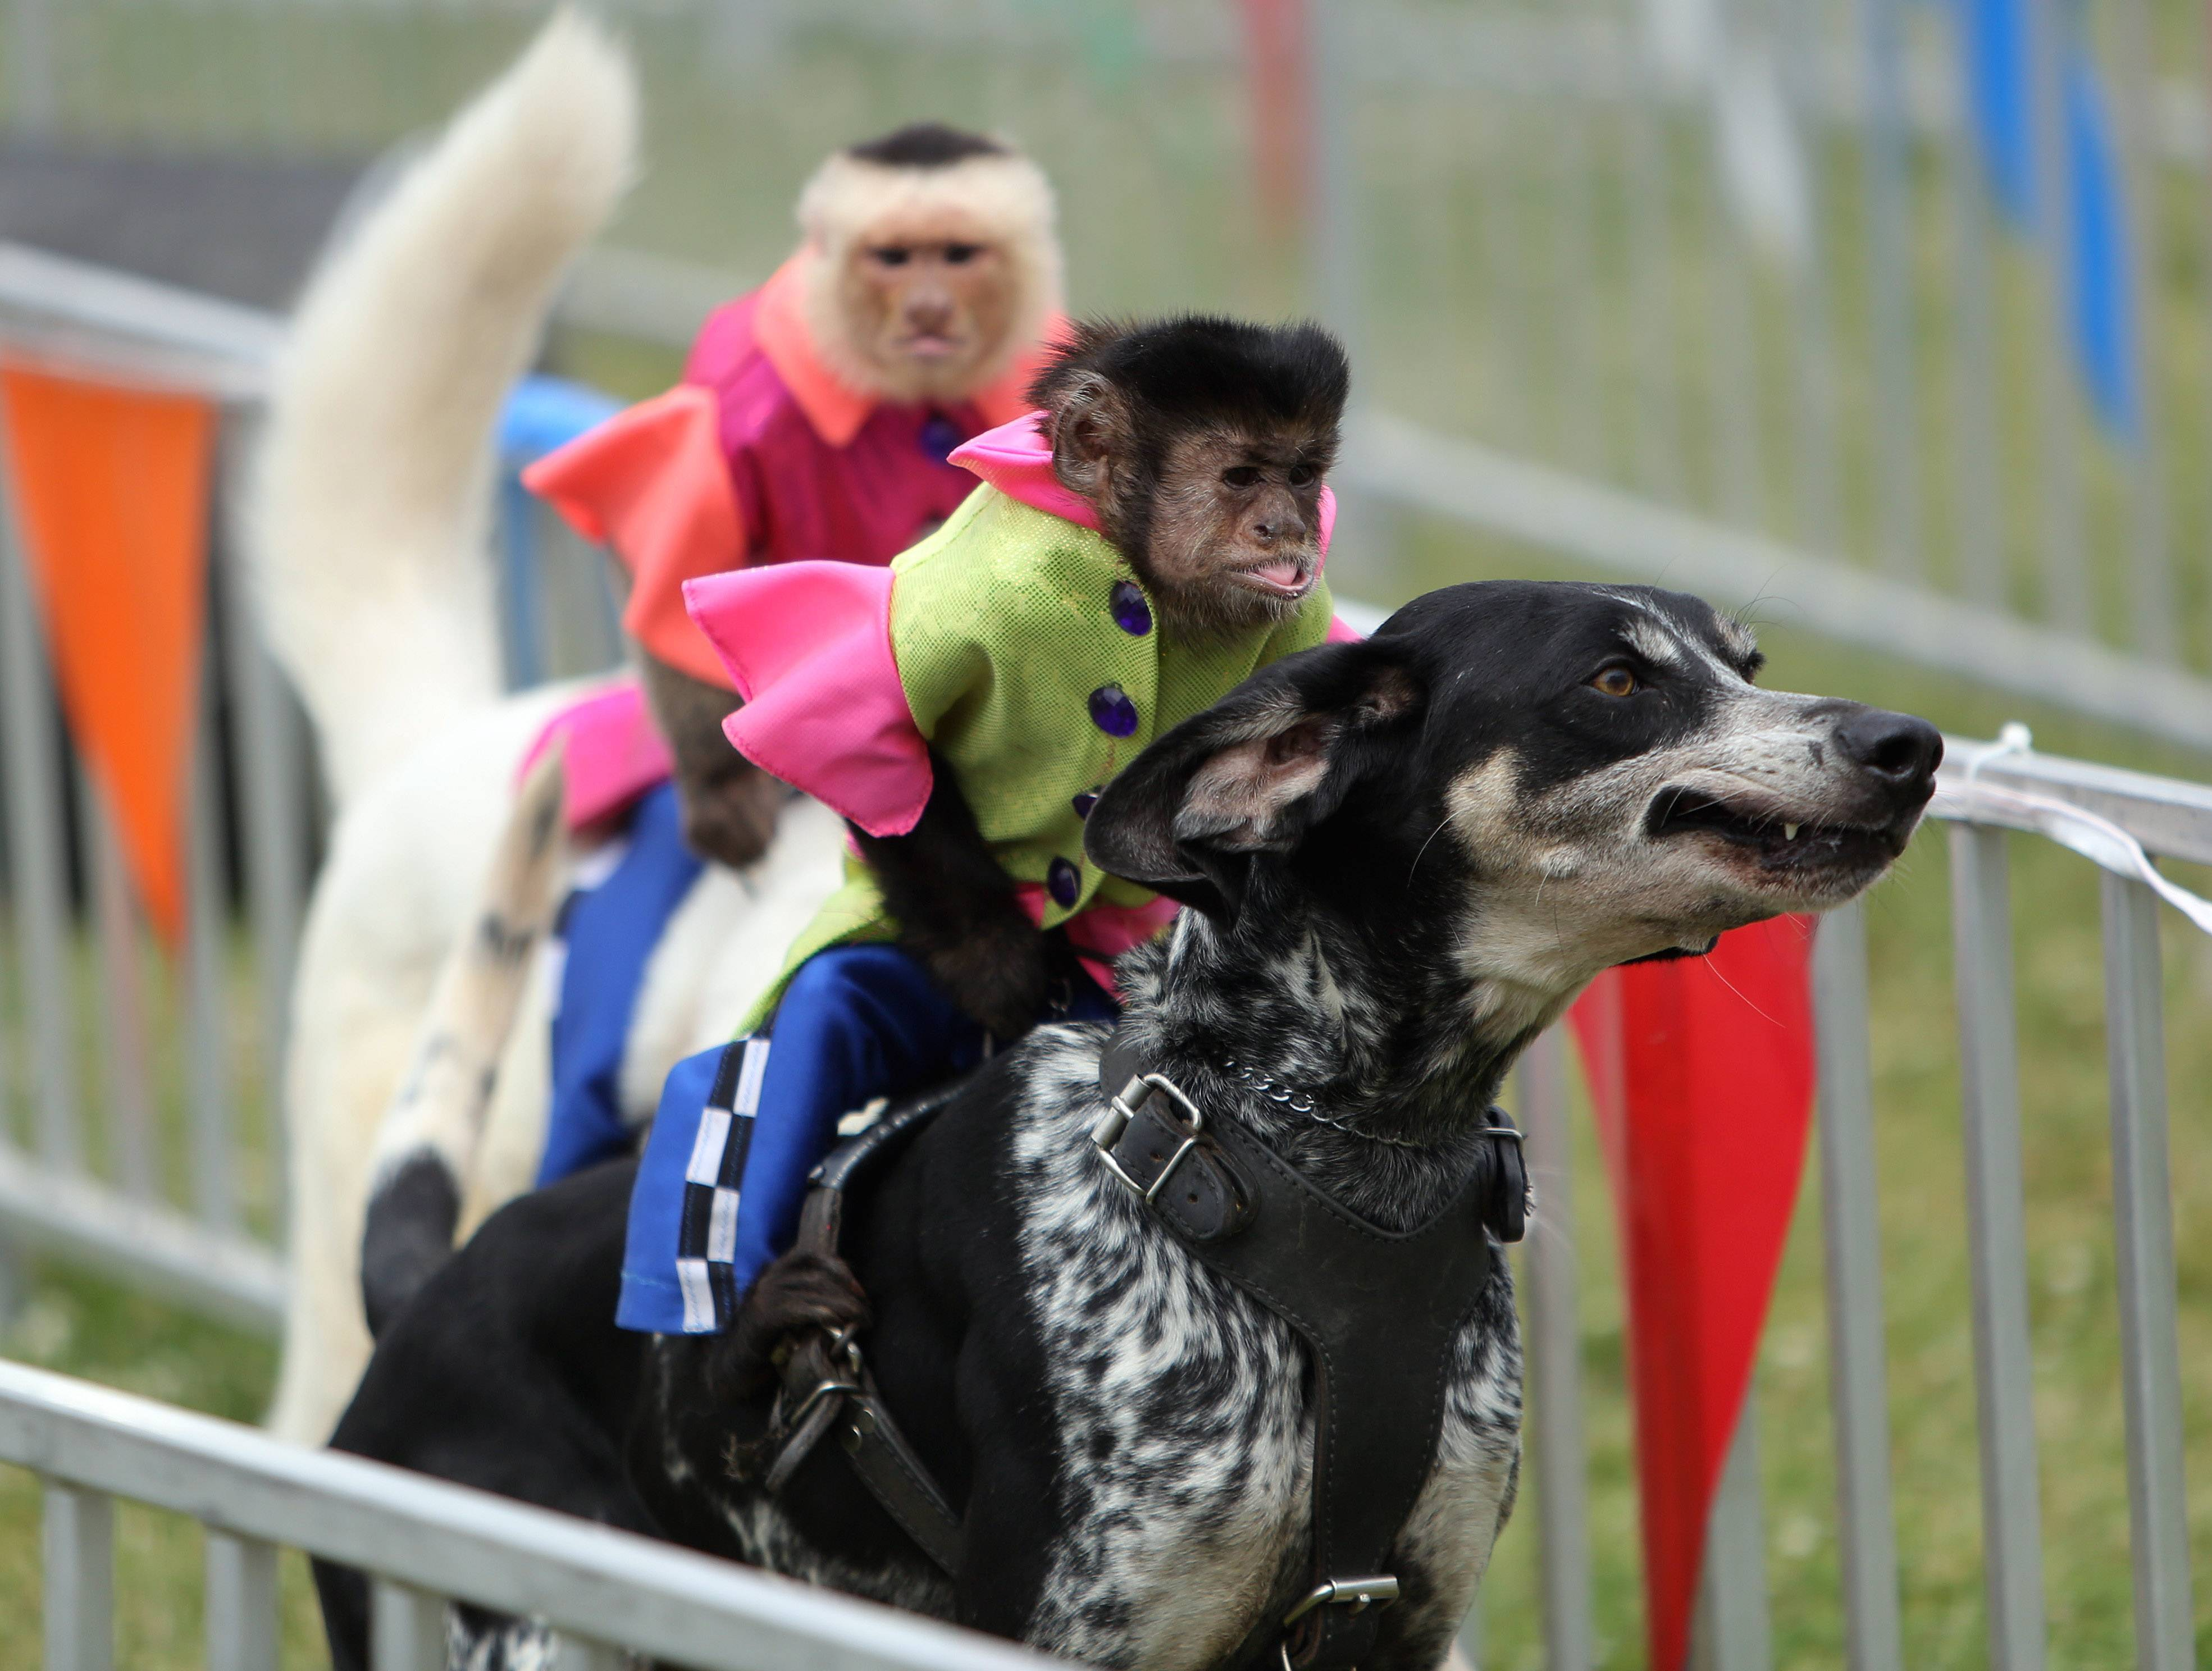 Burt, right, a capuchin monkey, rides Scooby Blue, as Bobo rides Sasha during the Banana Derby.